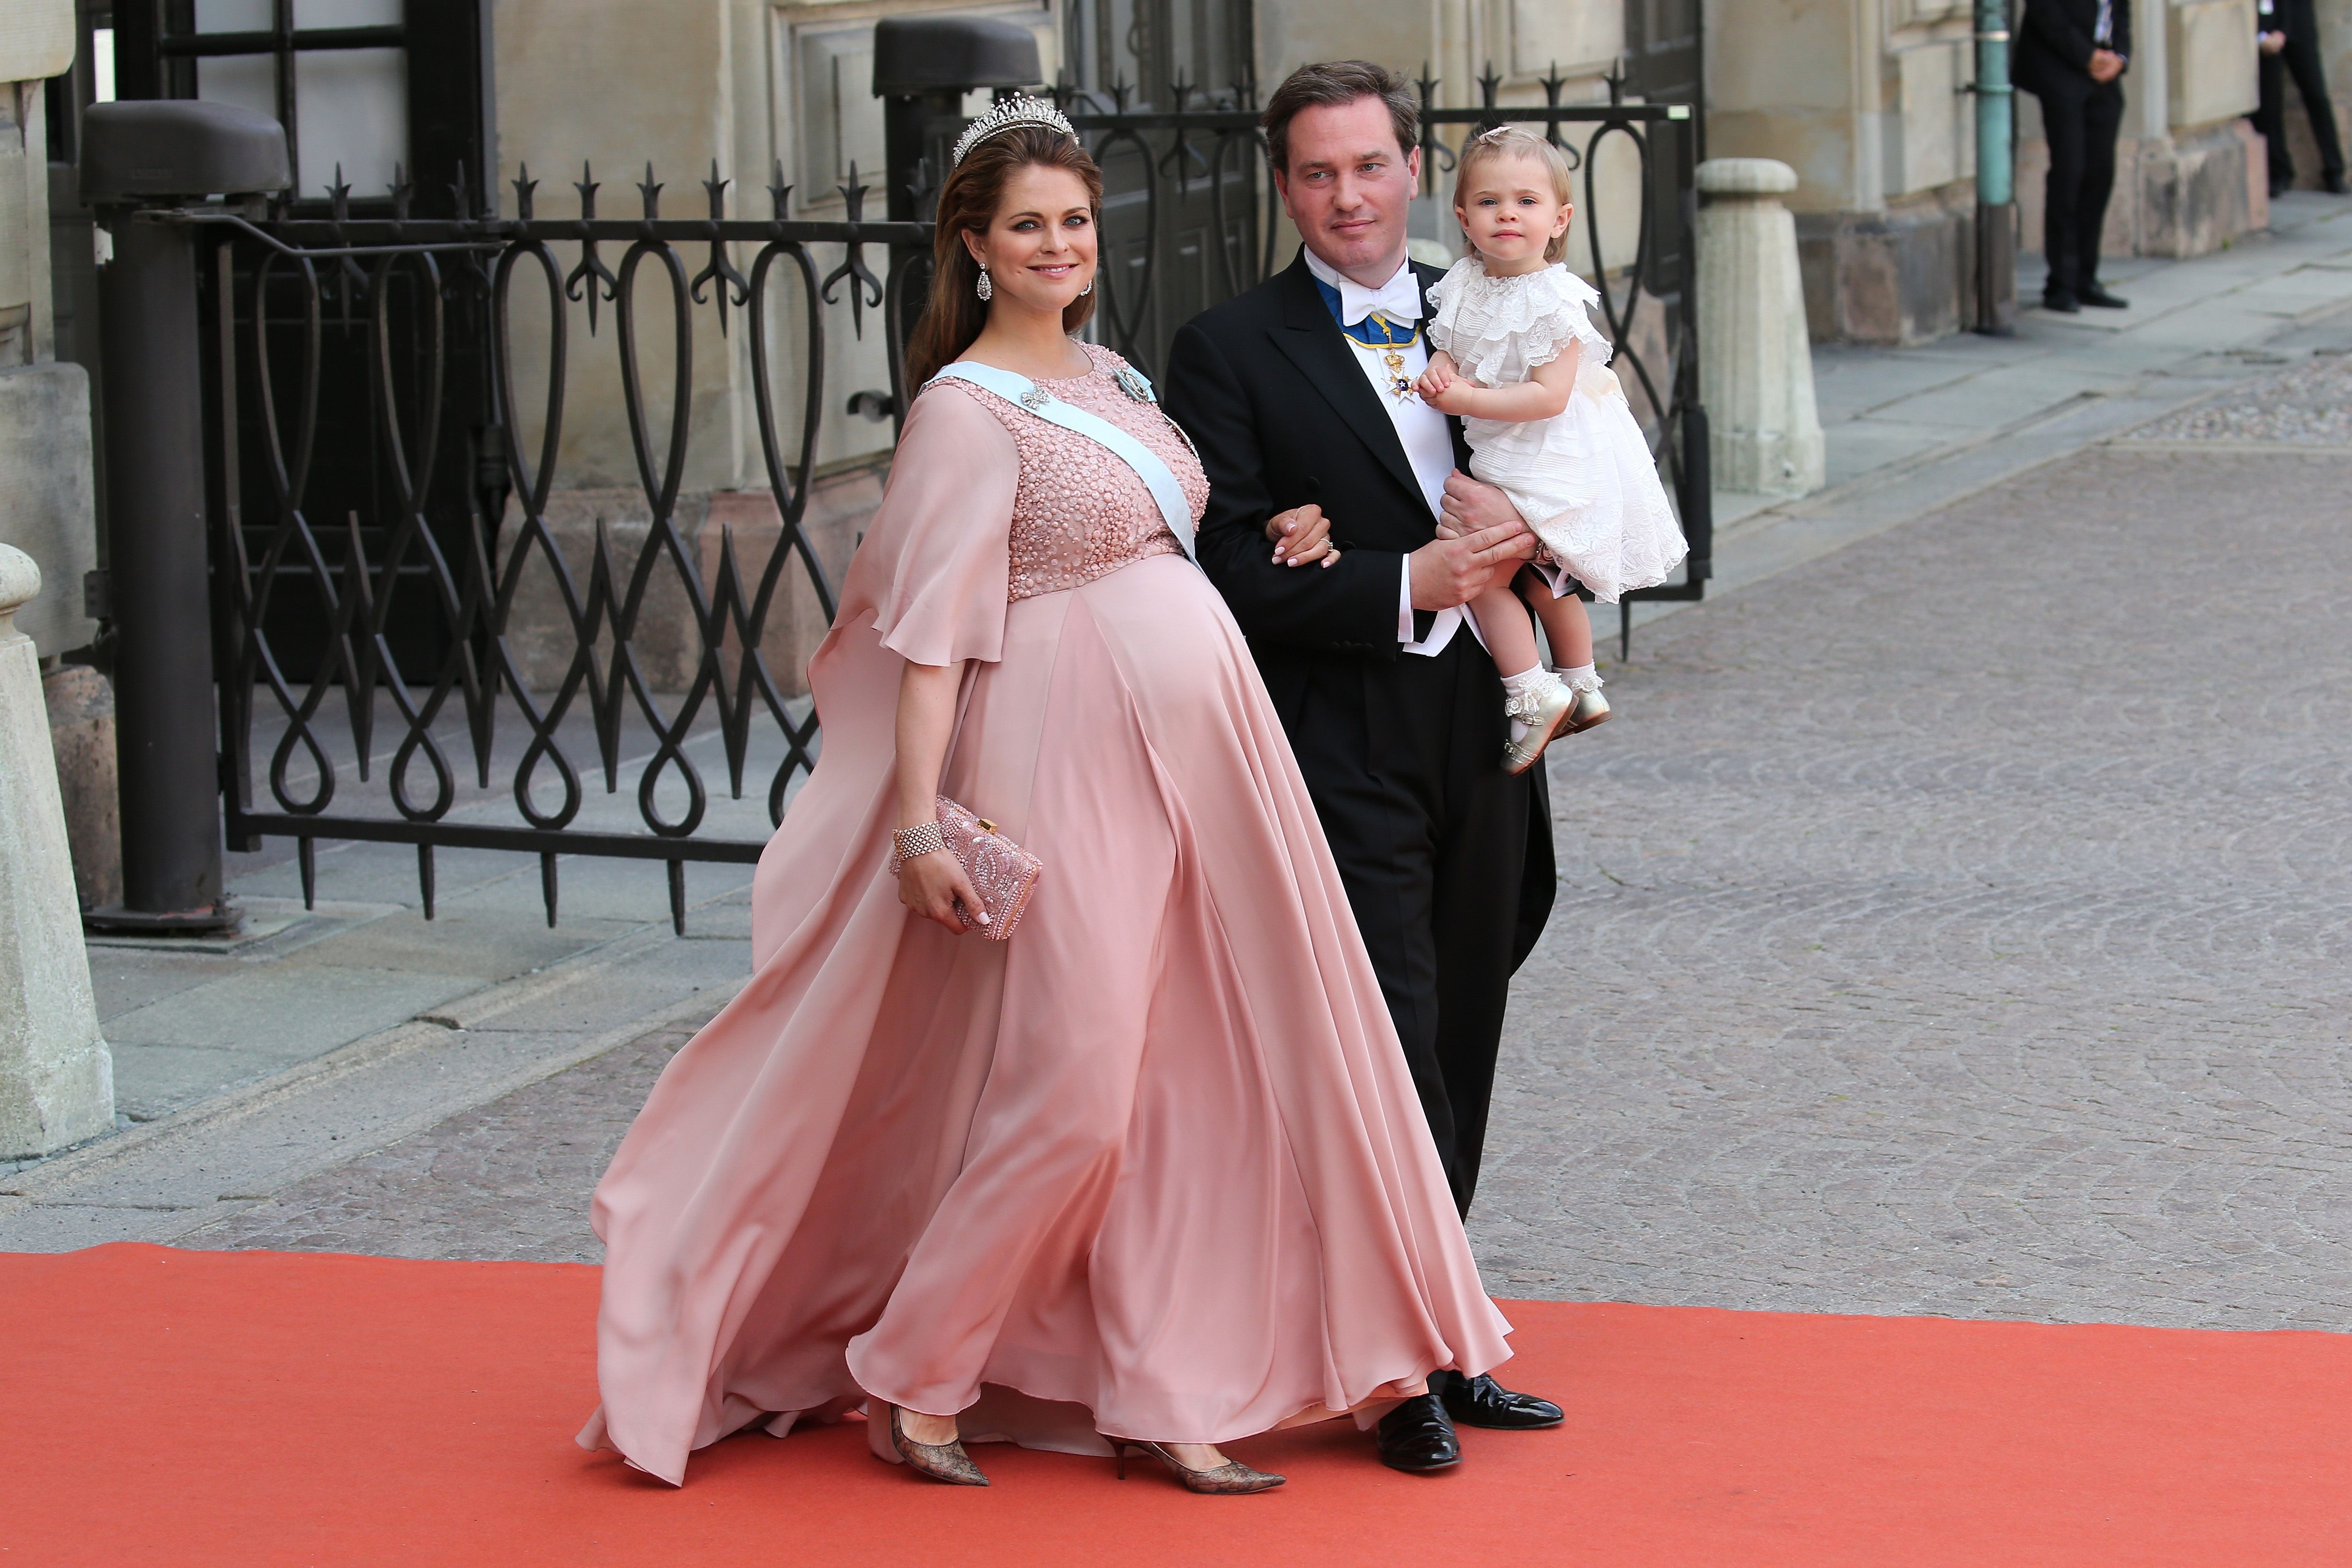 Royal Wedding Of Swedens Prince Carl Philip And Sofia Hellqvist